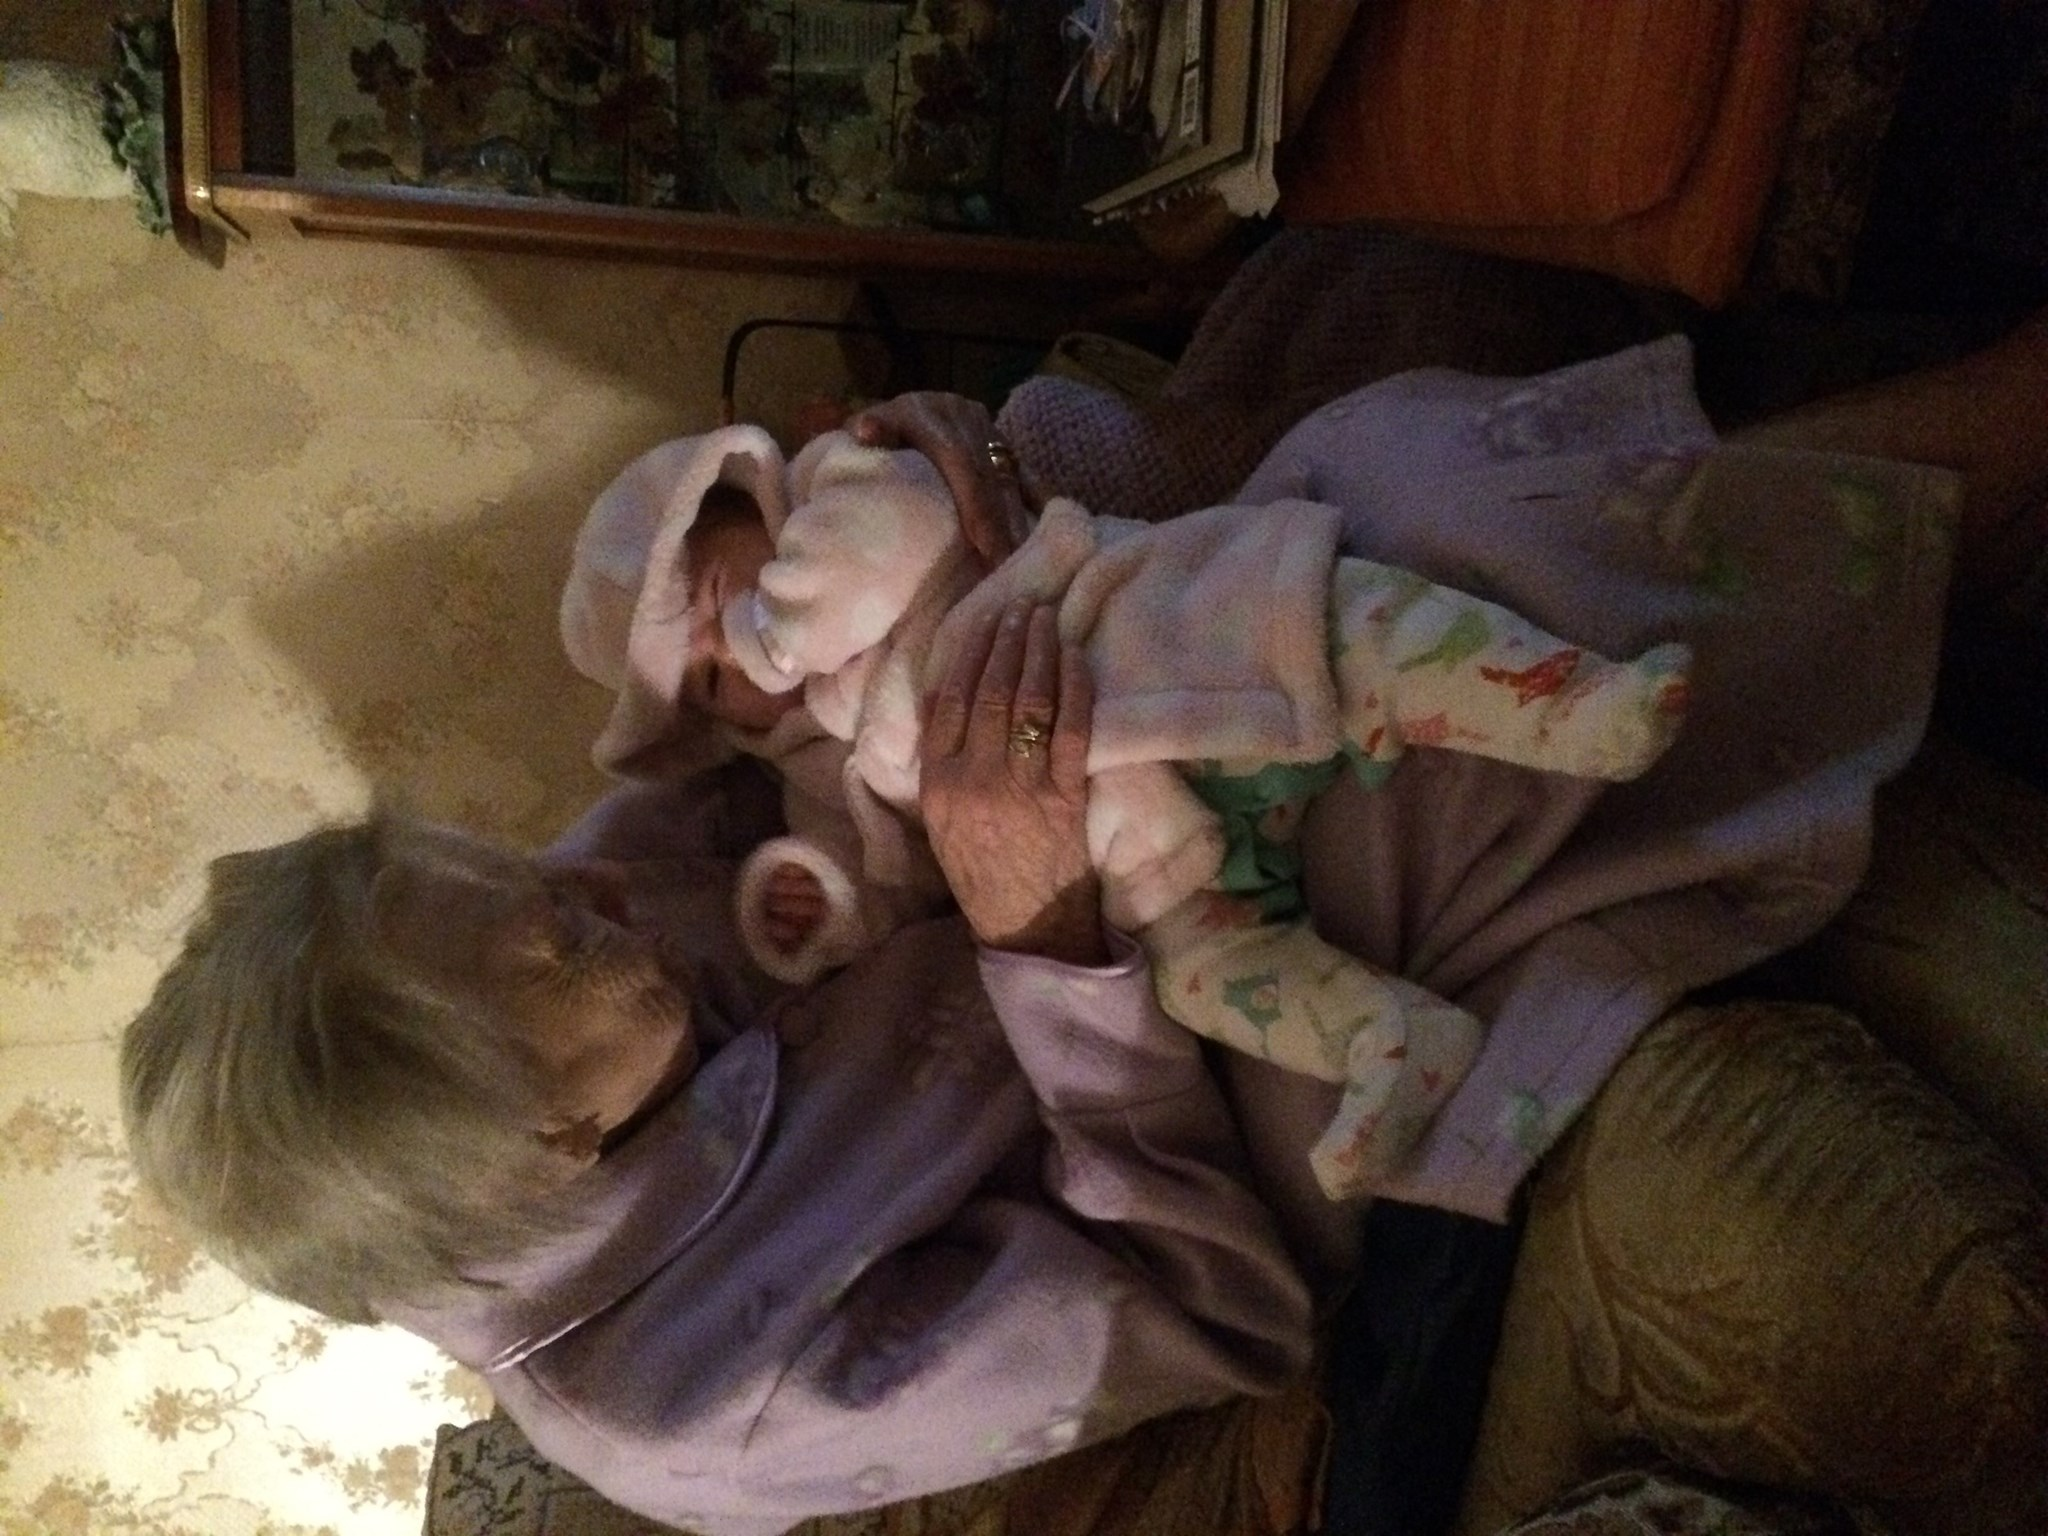 Joyce with baby Lily